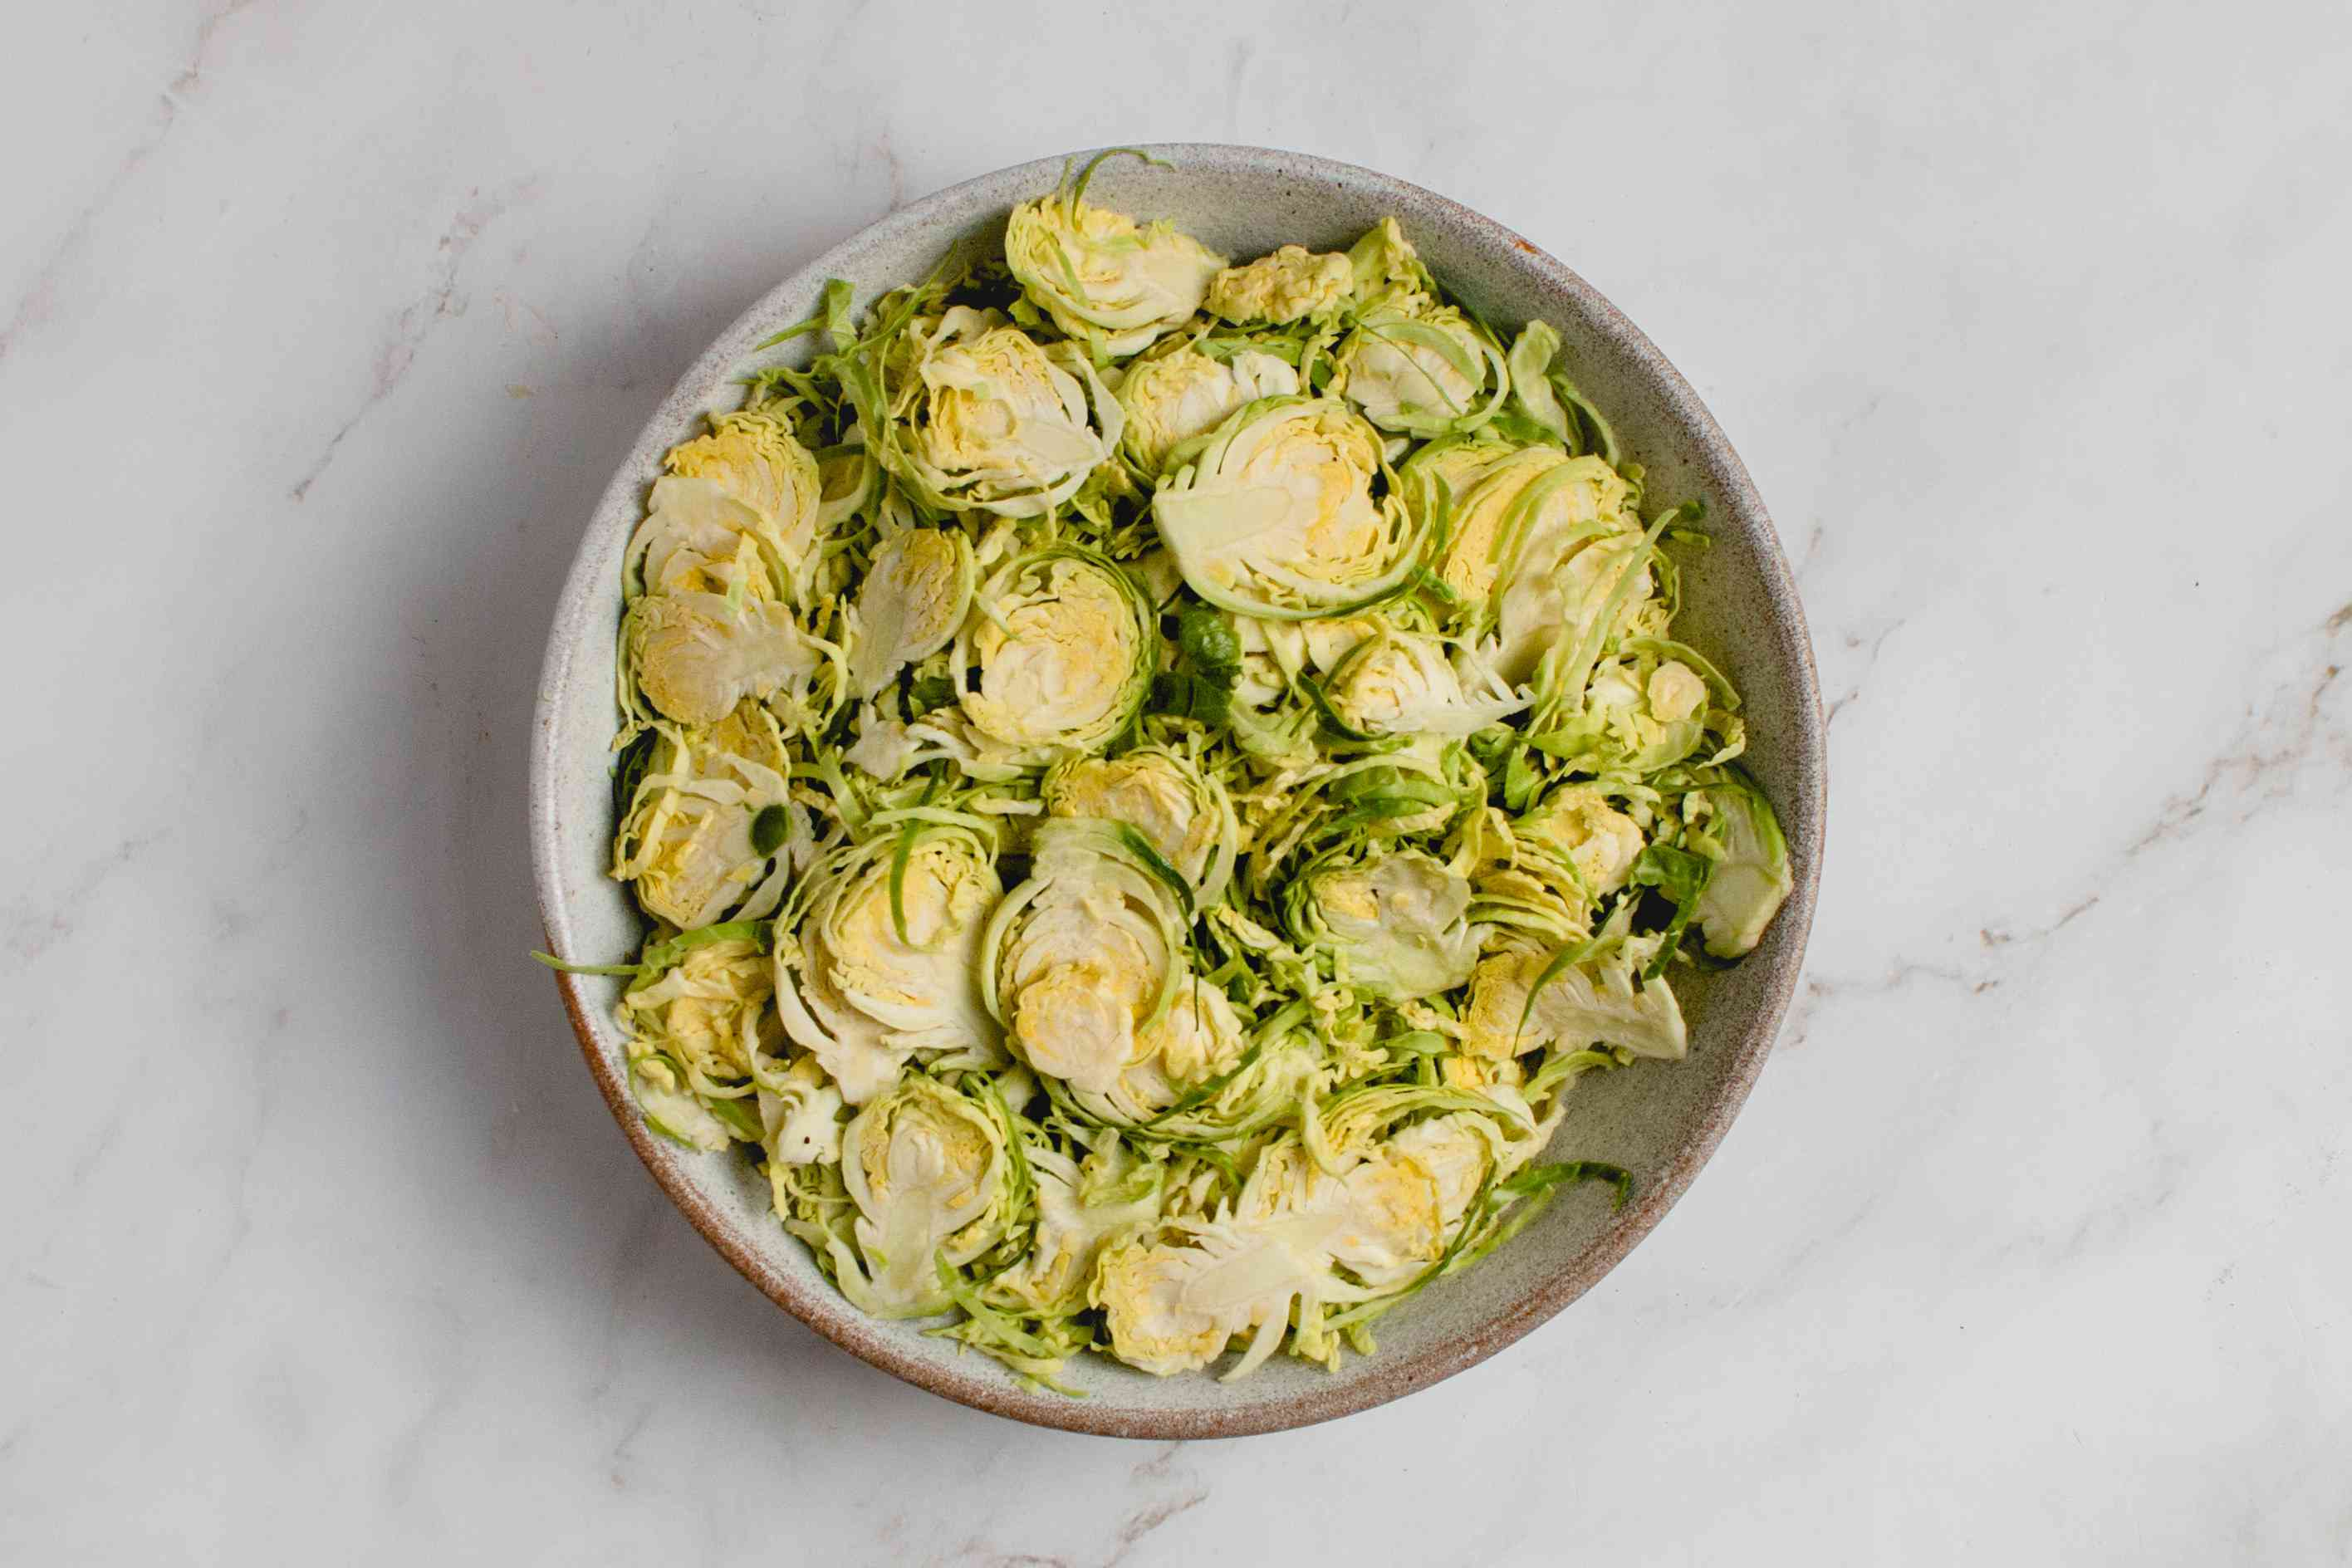 Brussels Sprouts cut lengthwise into pieces